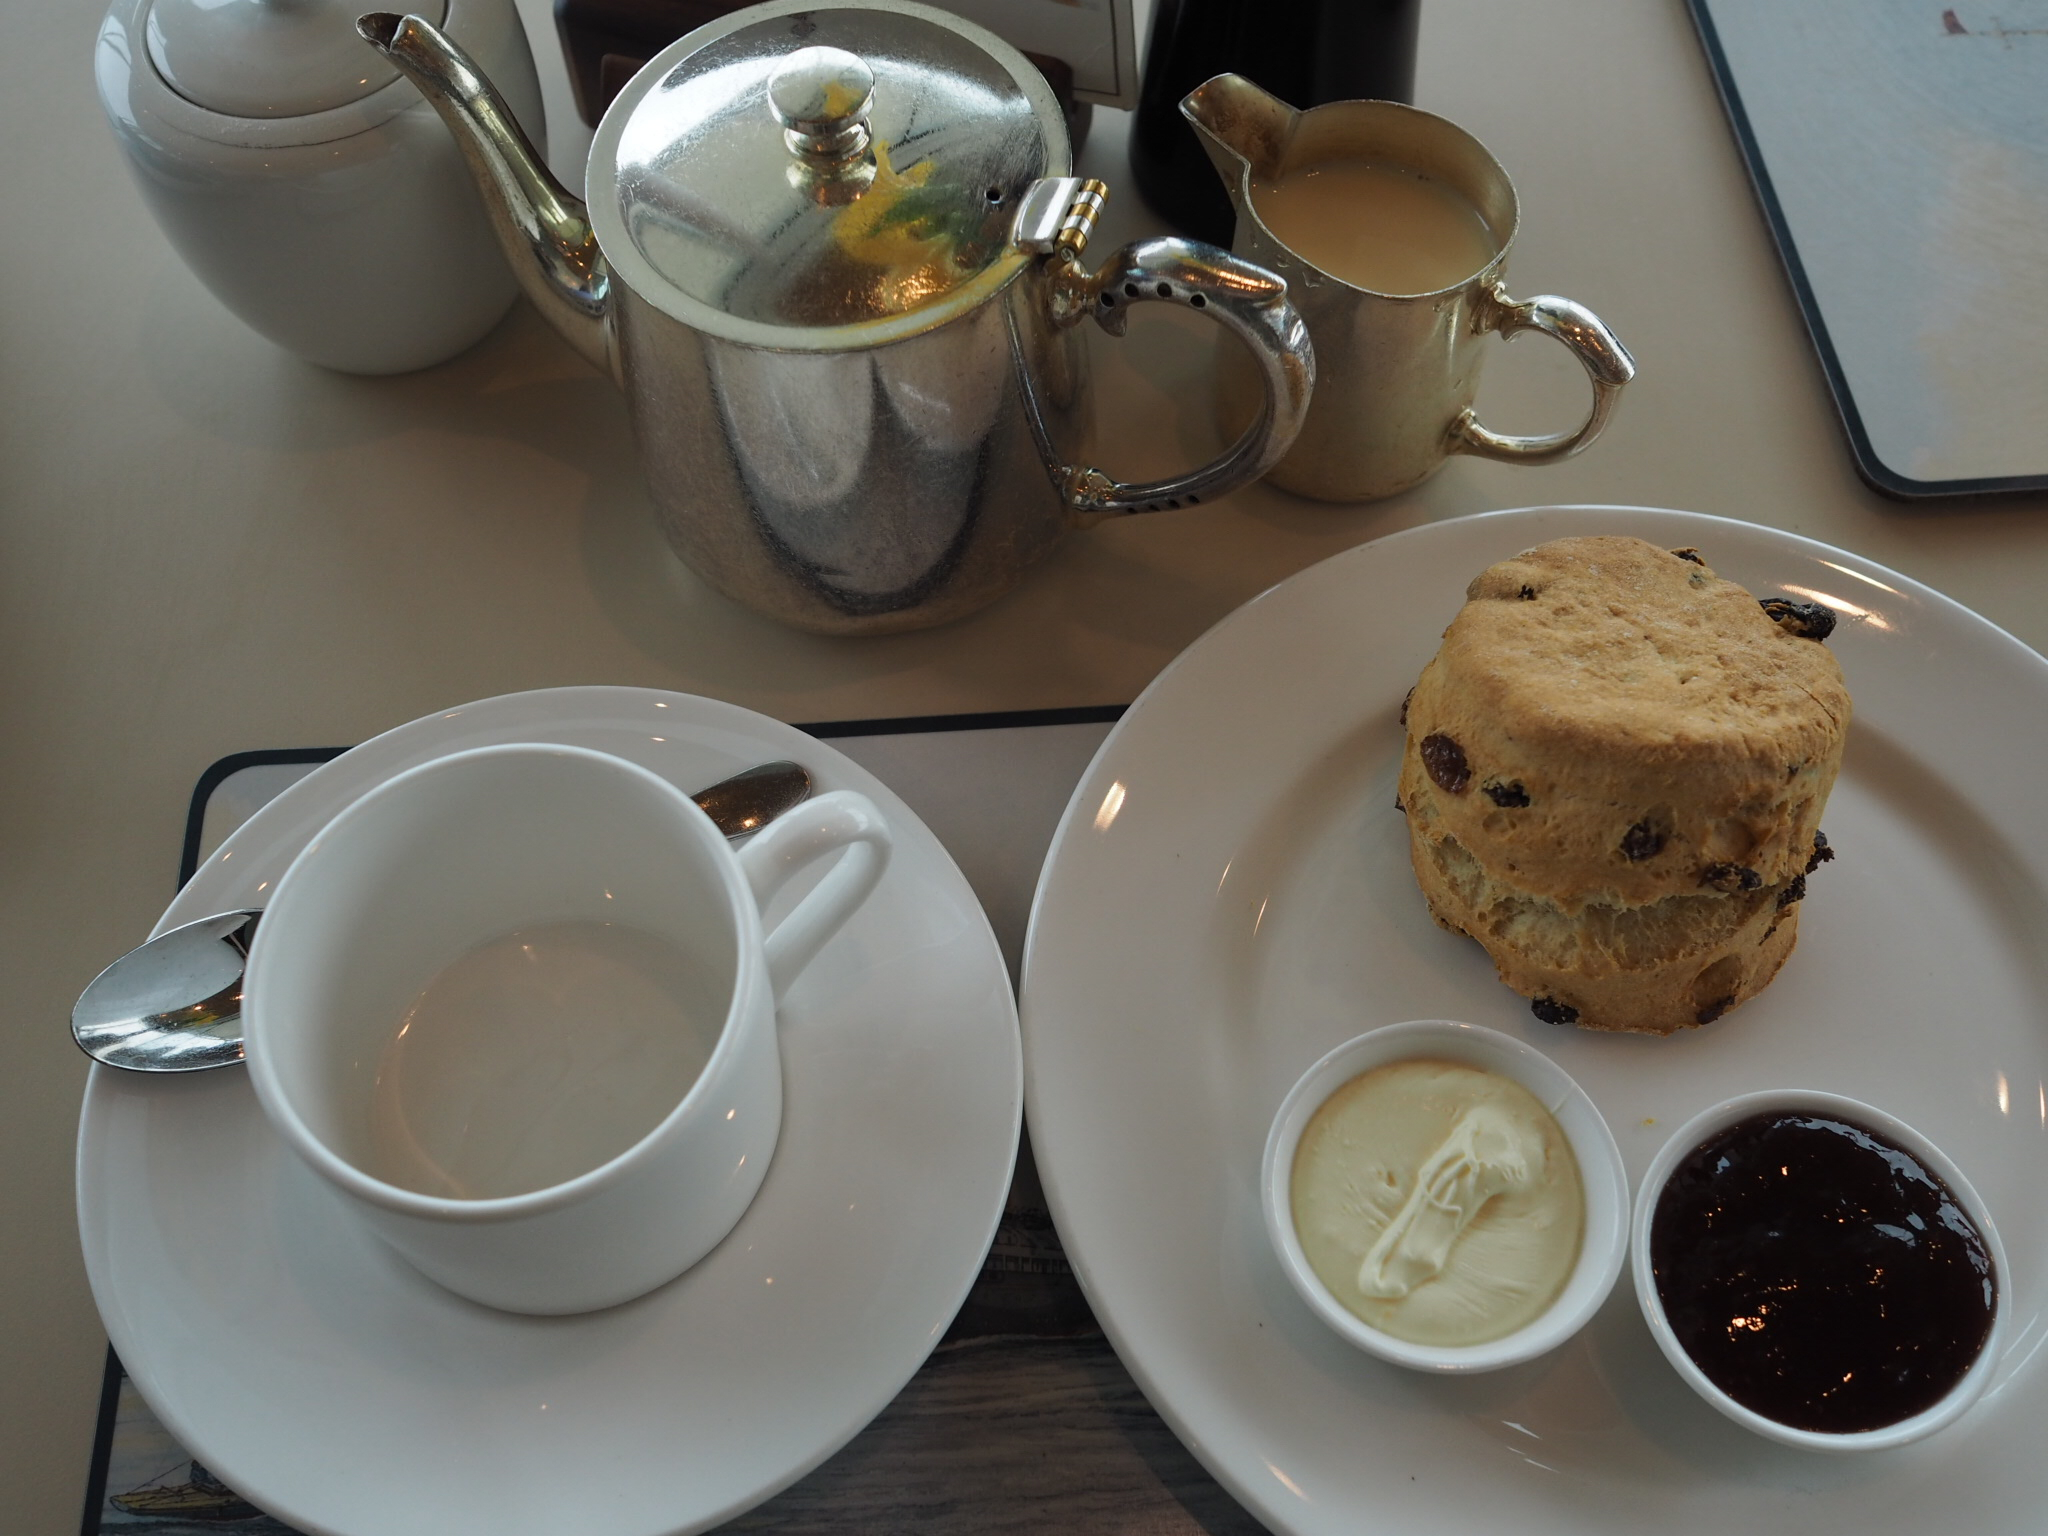 The-Royal-Britannia-Royal-deck-tea-room